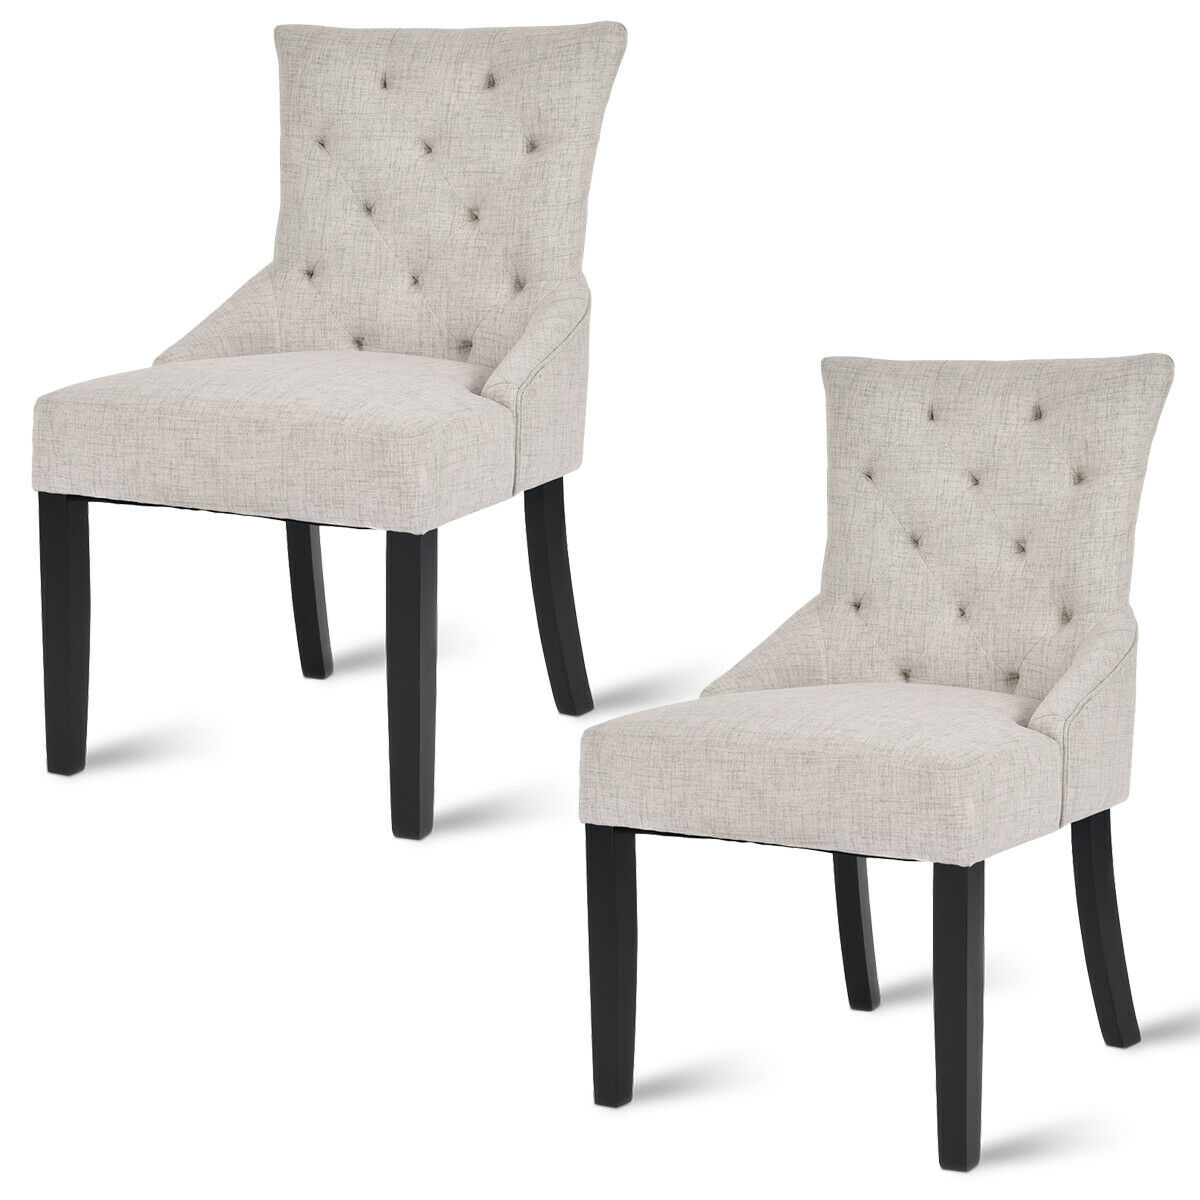 Costway Set of 2 Dining Chairs Armless Chair Tufted Design Fabric Upholstered Modern